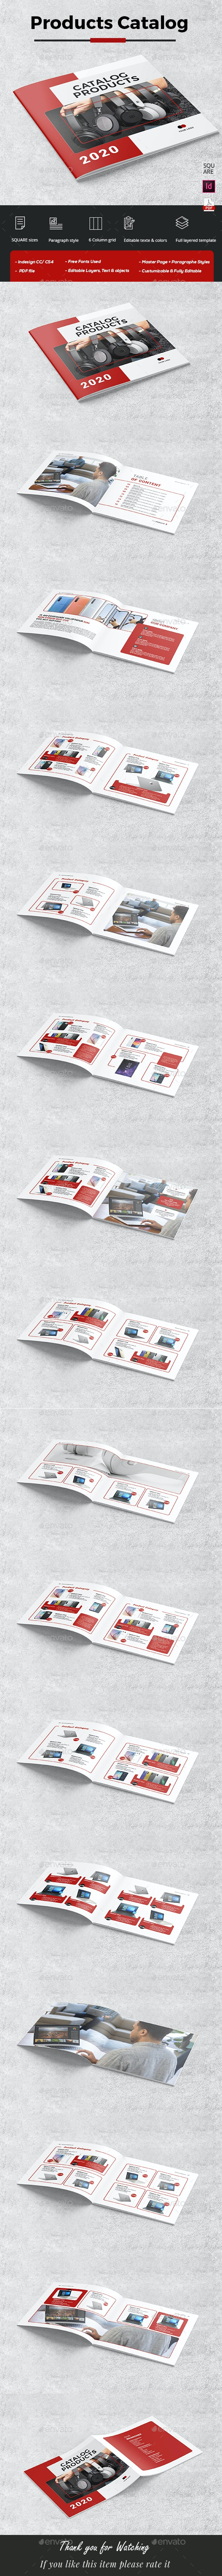 Square Catalog Products